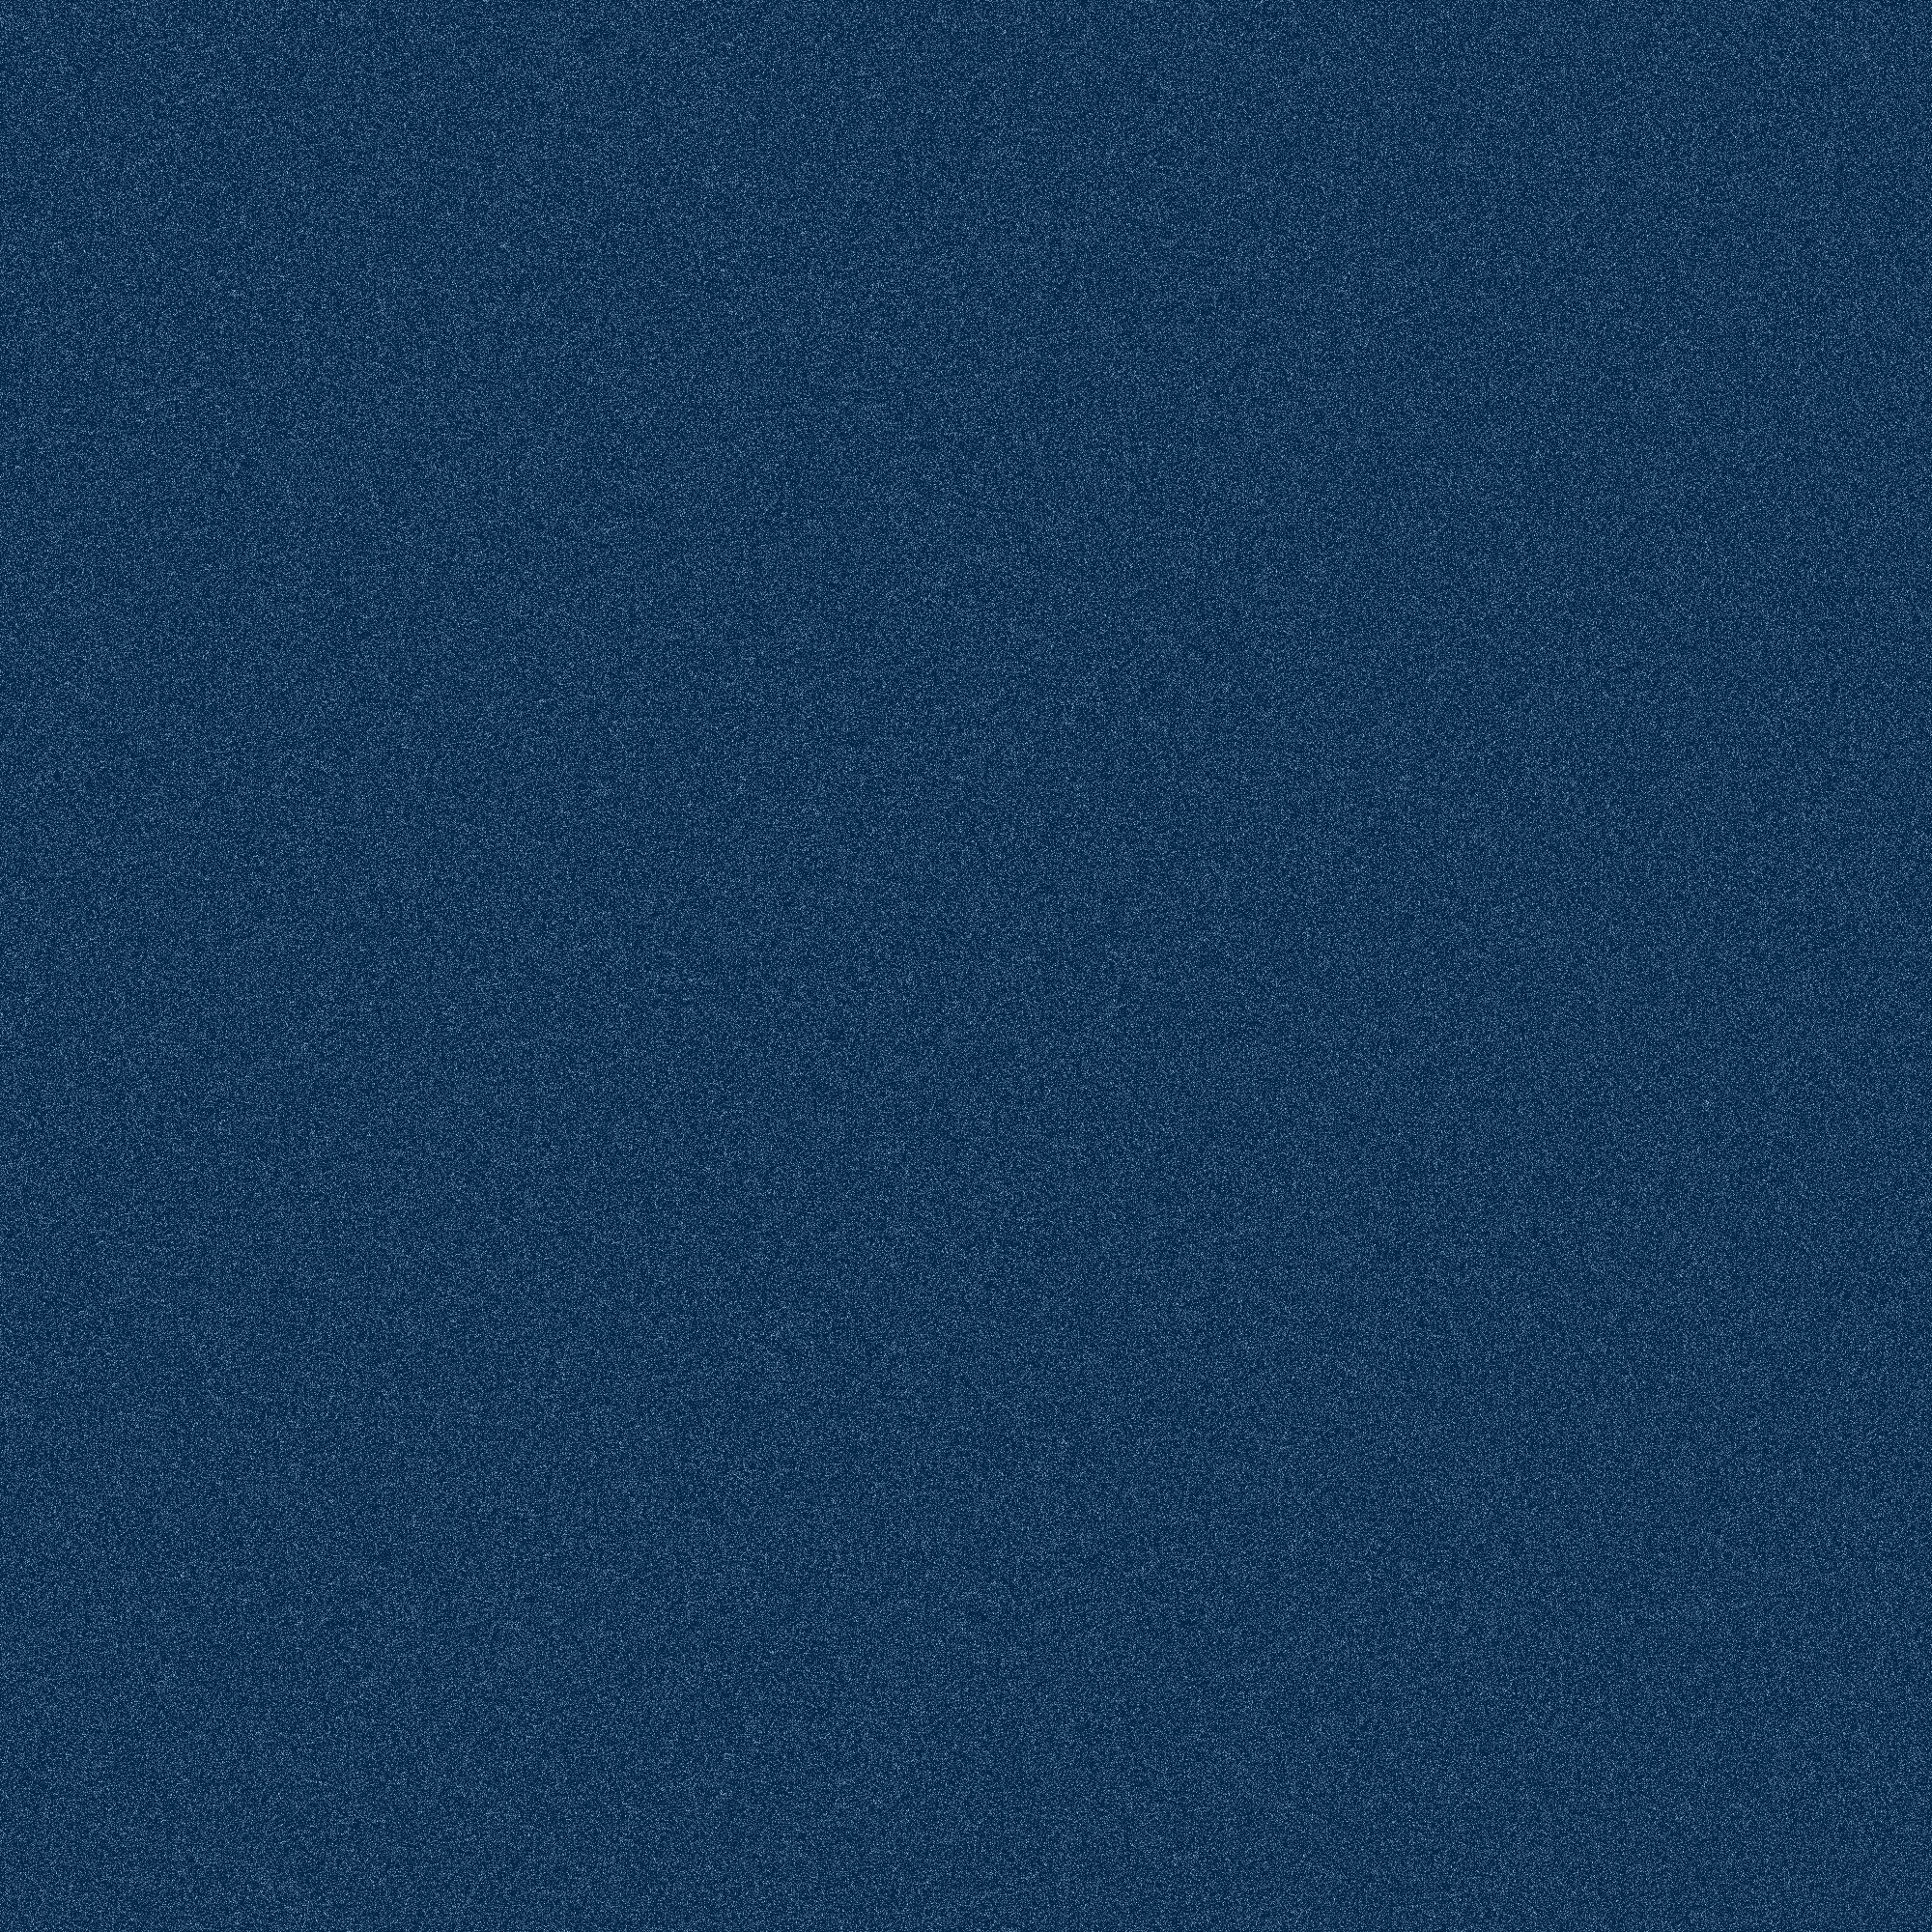 Navy blue noise background texture png public domain for Navy blue wallpaper for walls